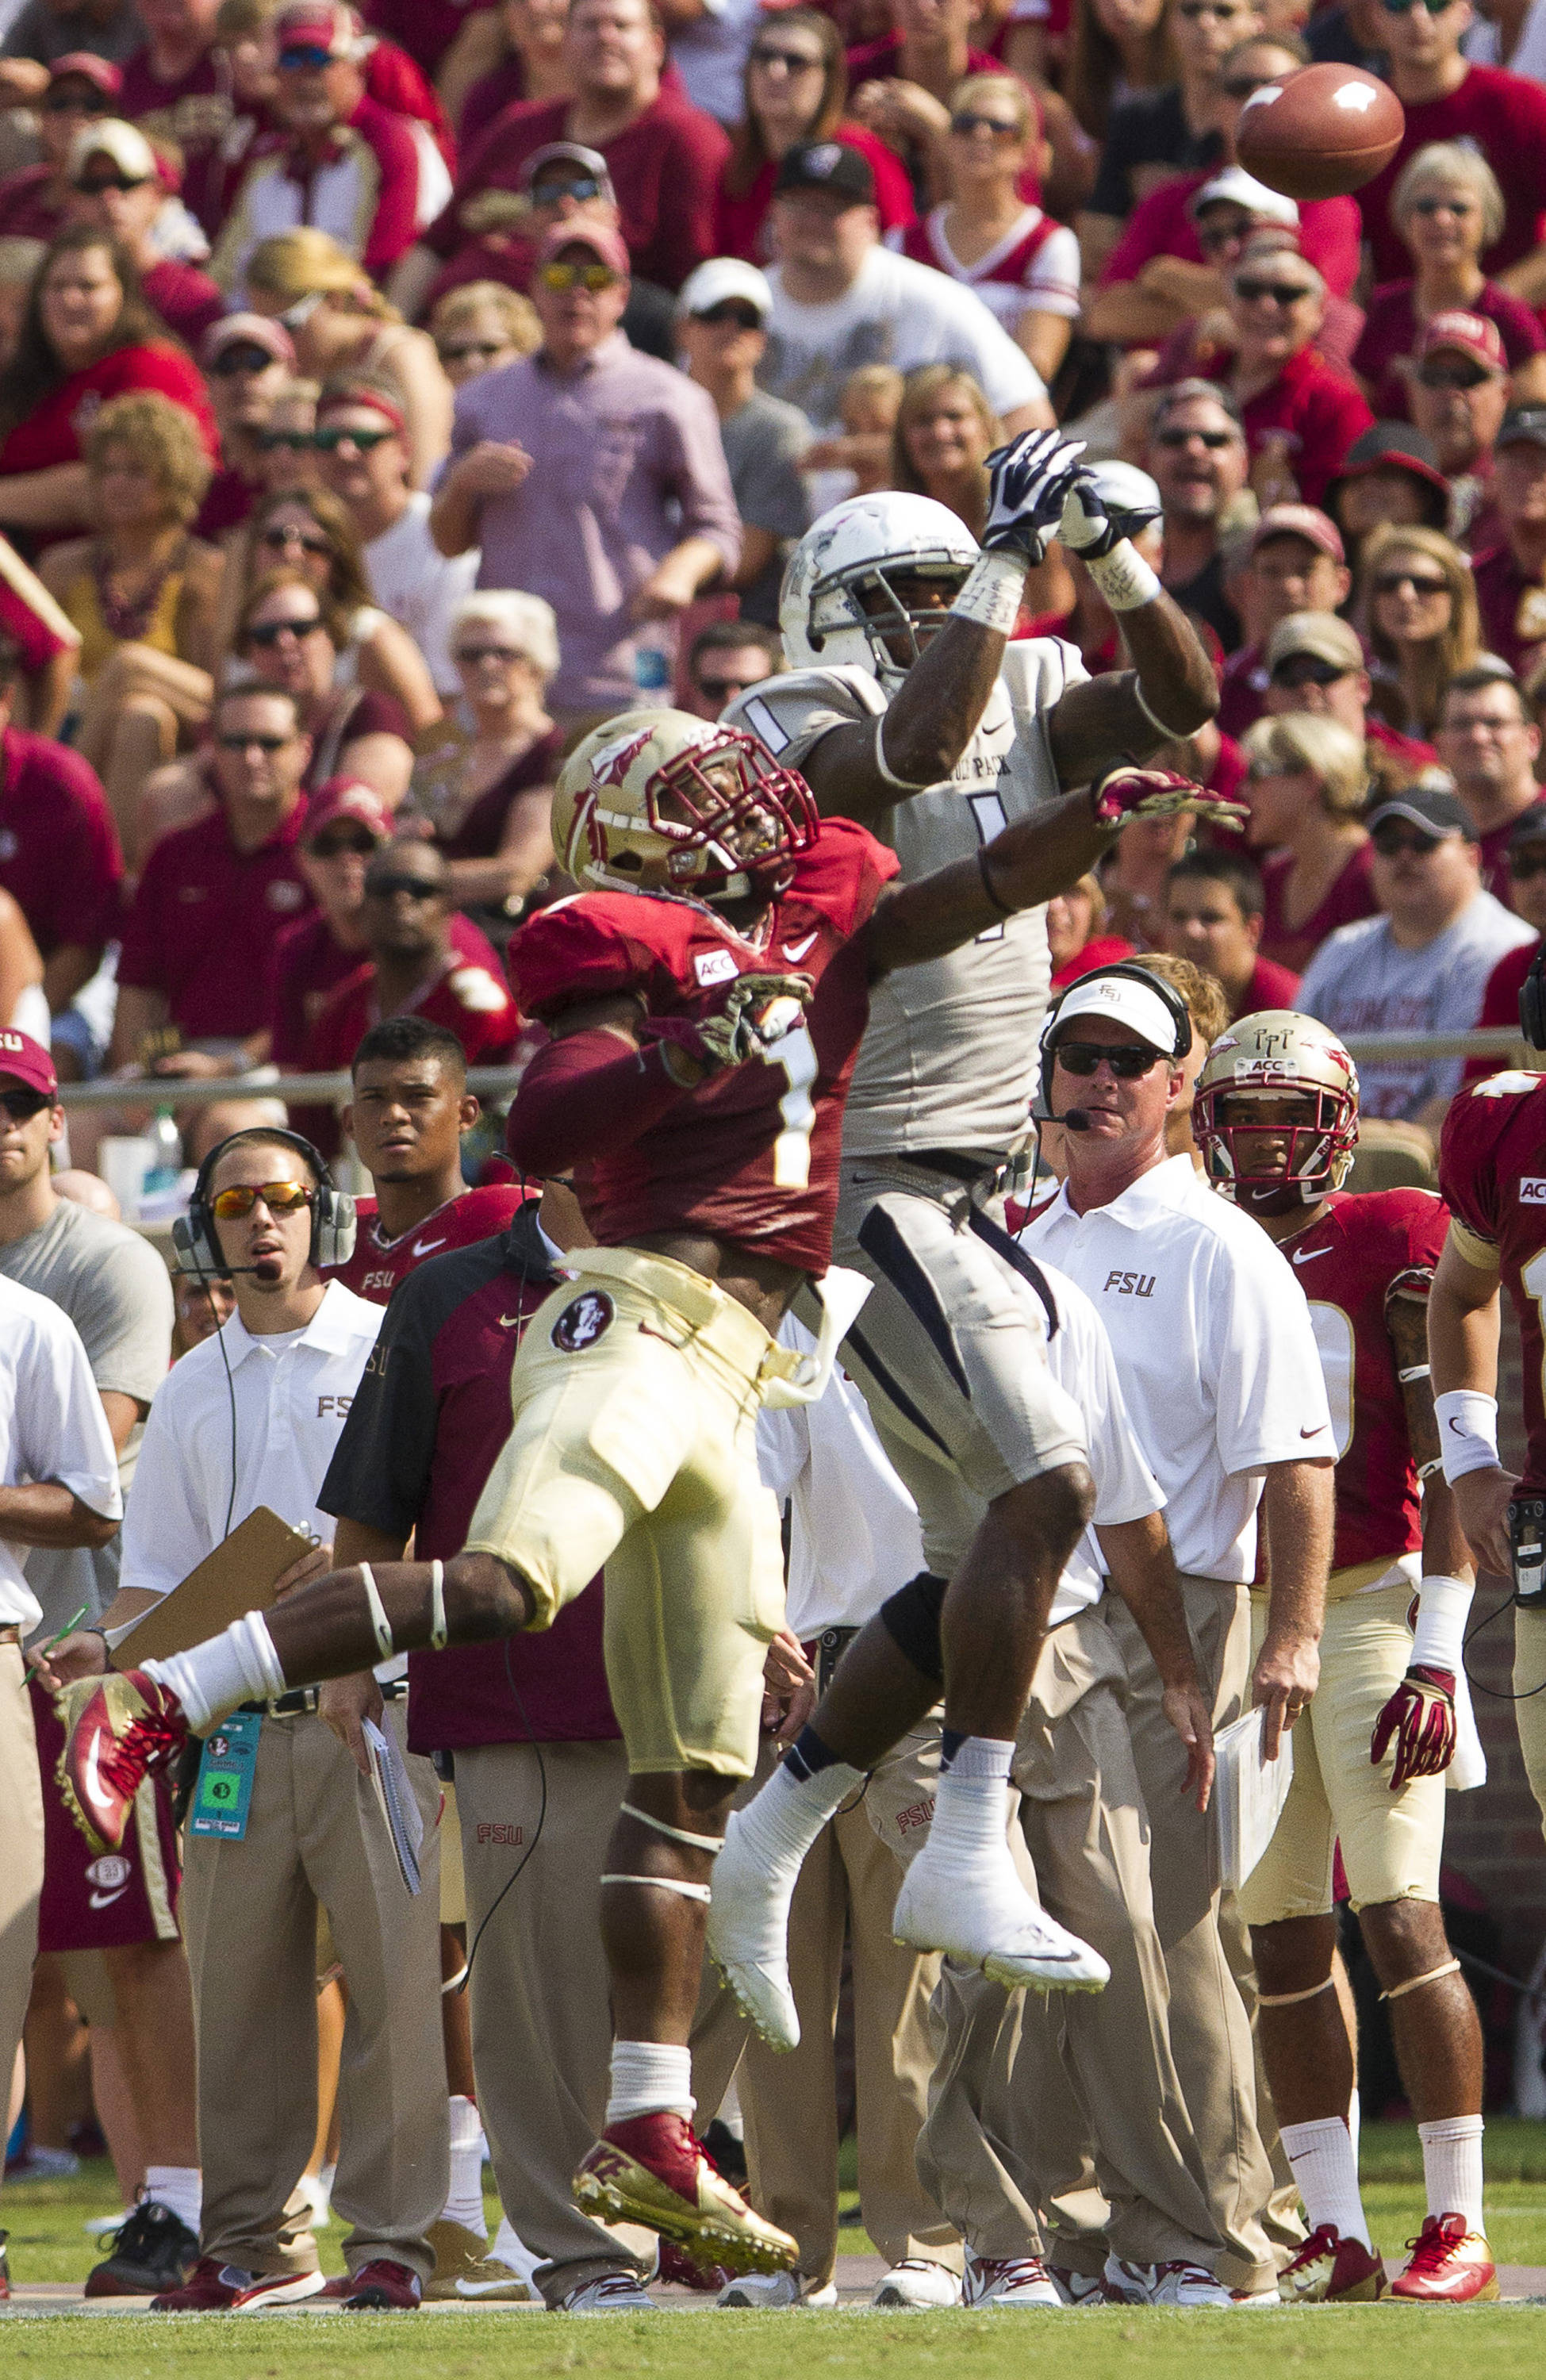 Tyler Hunter (1) attempts to break up a pass during FSU's 62-7 win over Nevada on Saturday, Sept 14, 2013 in Tallahassee, Fla.